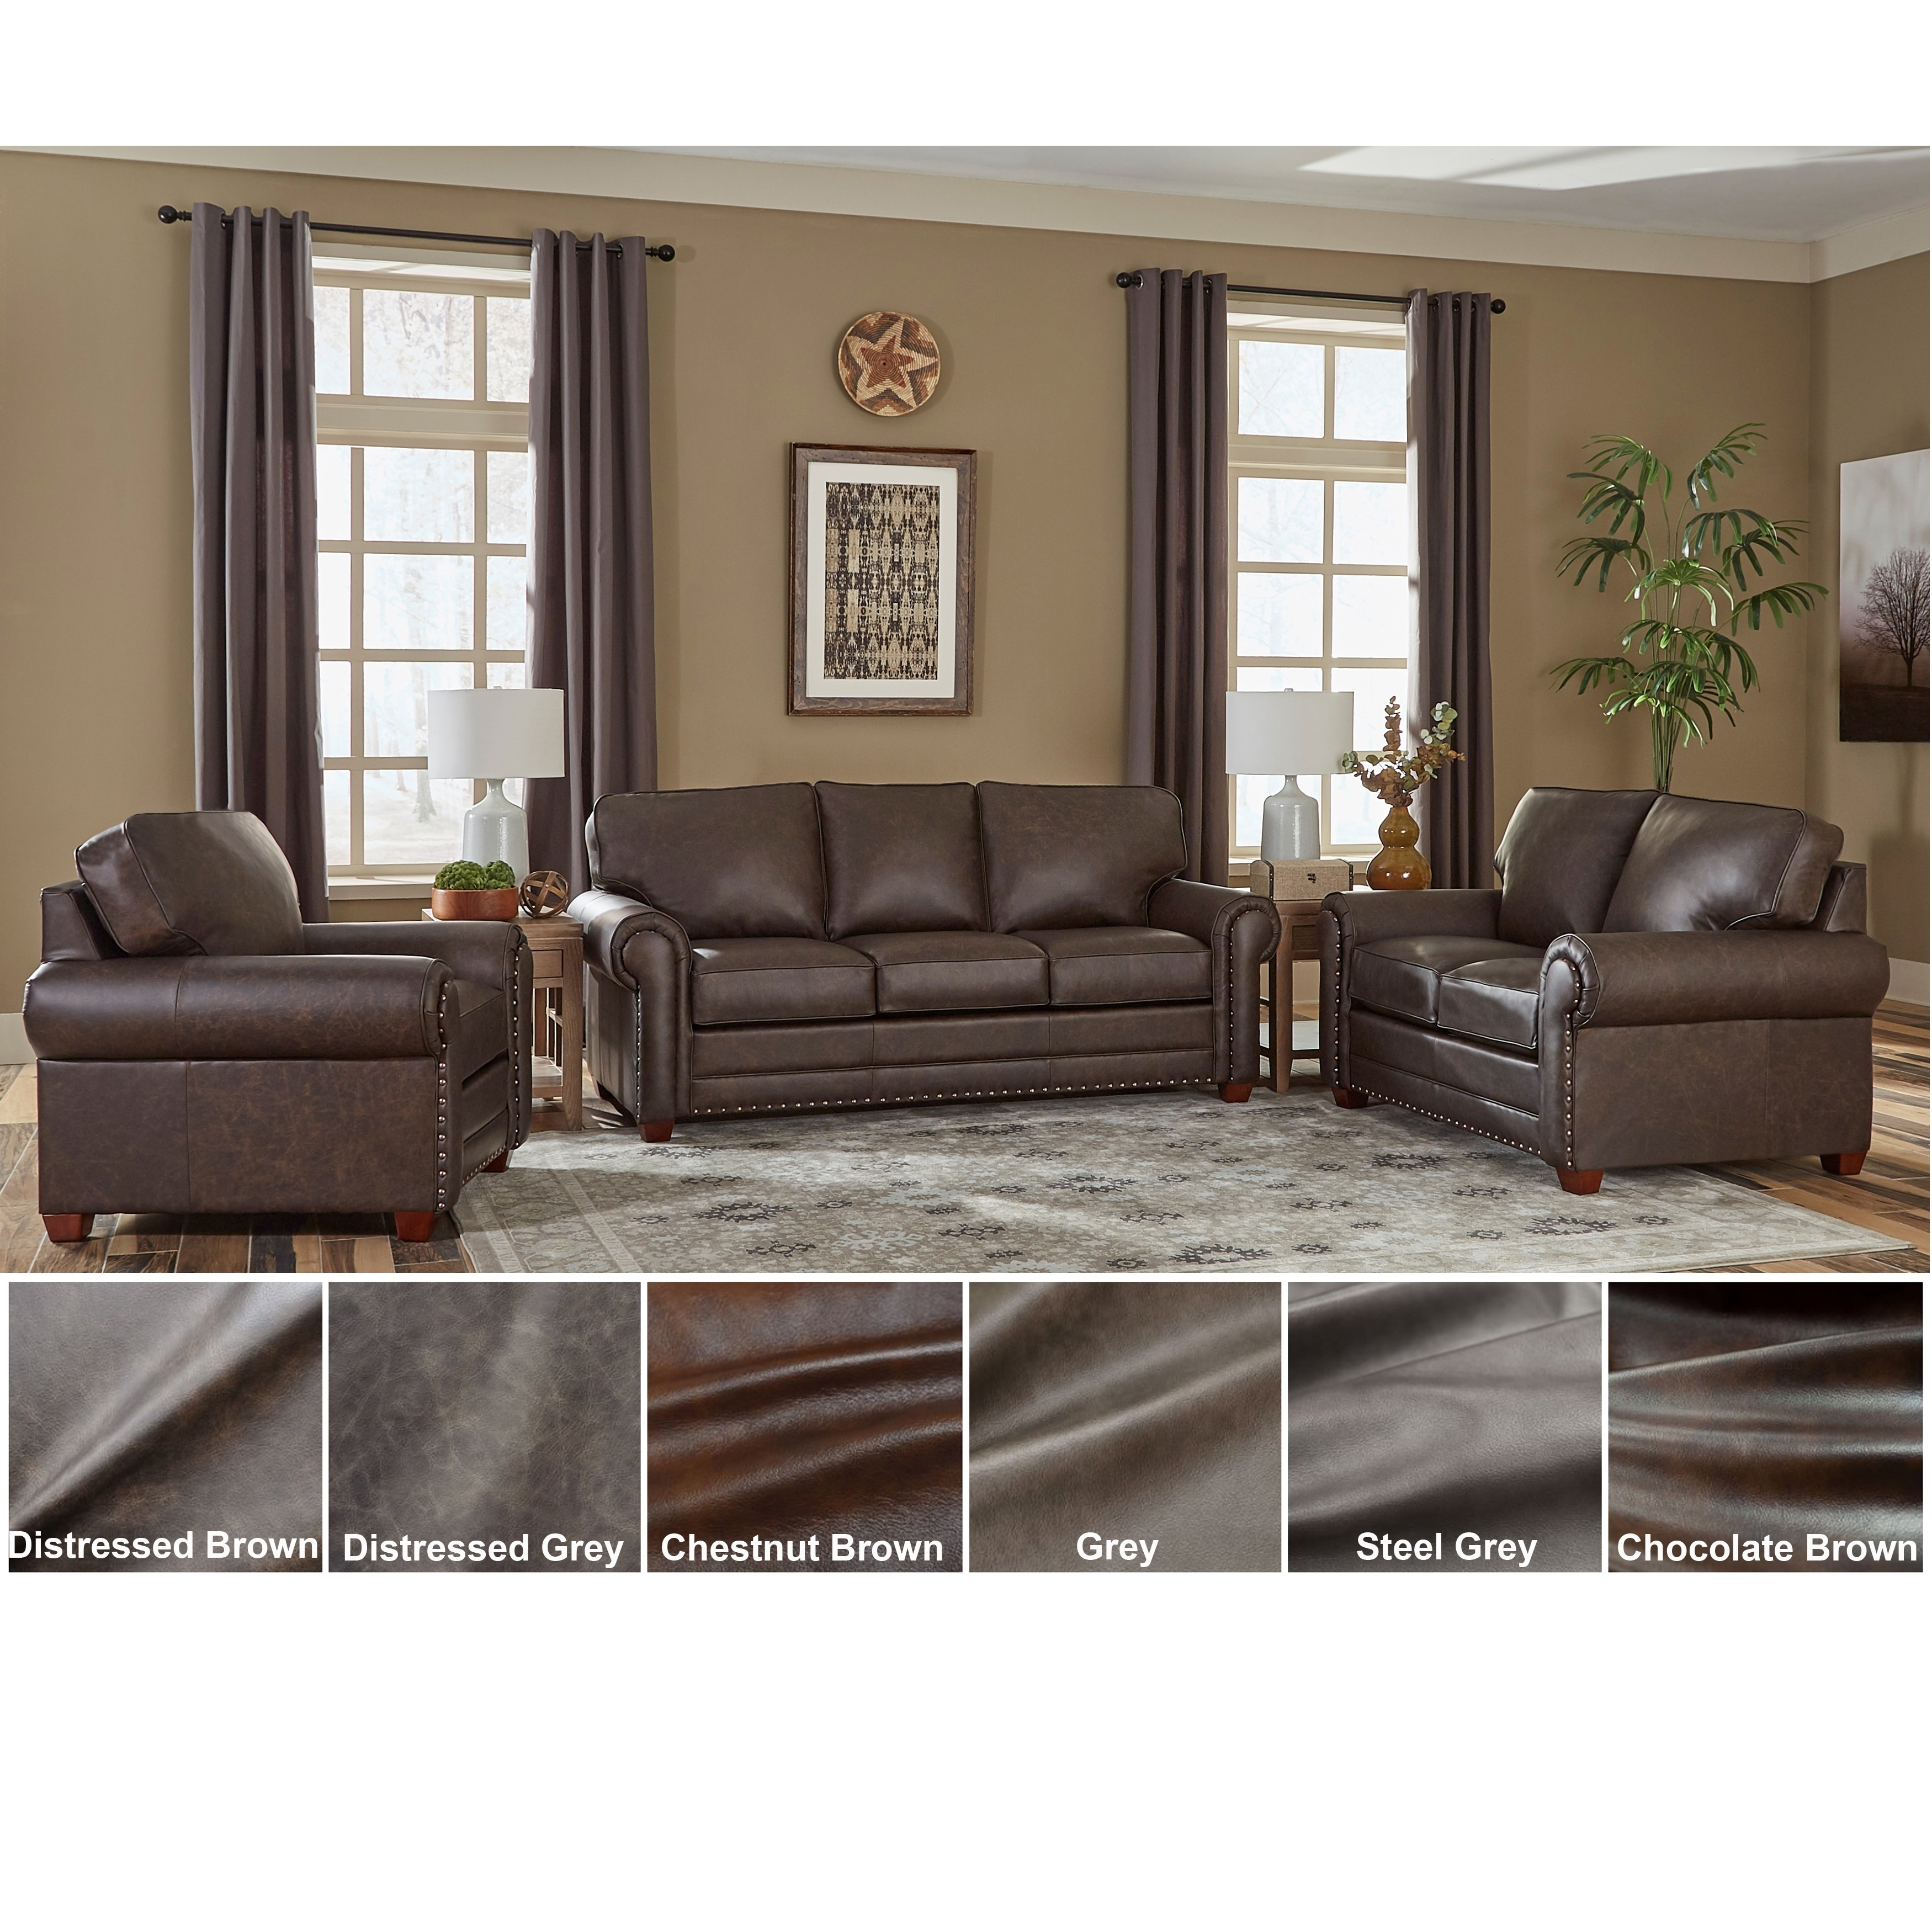 Made in USA Raval Top Grain Leather Sofa, Loveseat and Chair